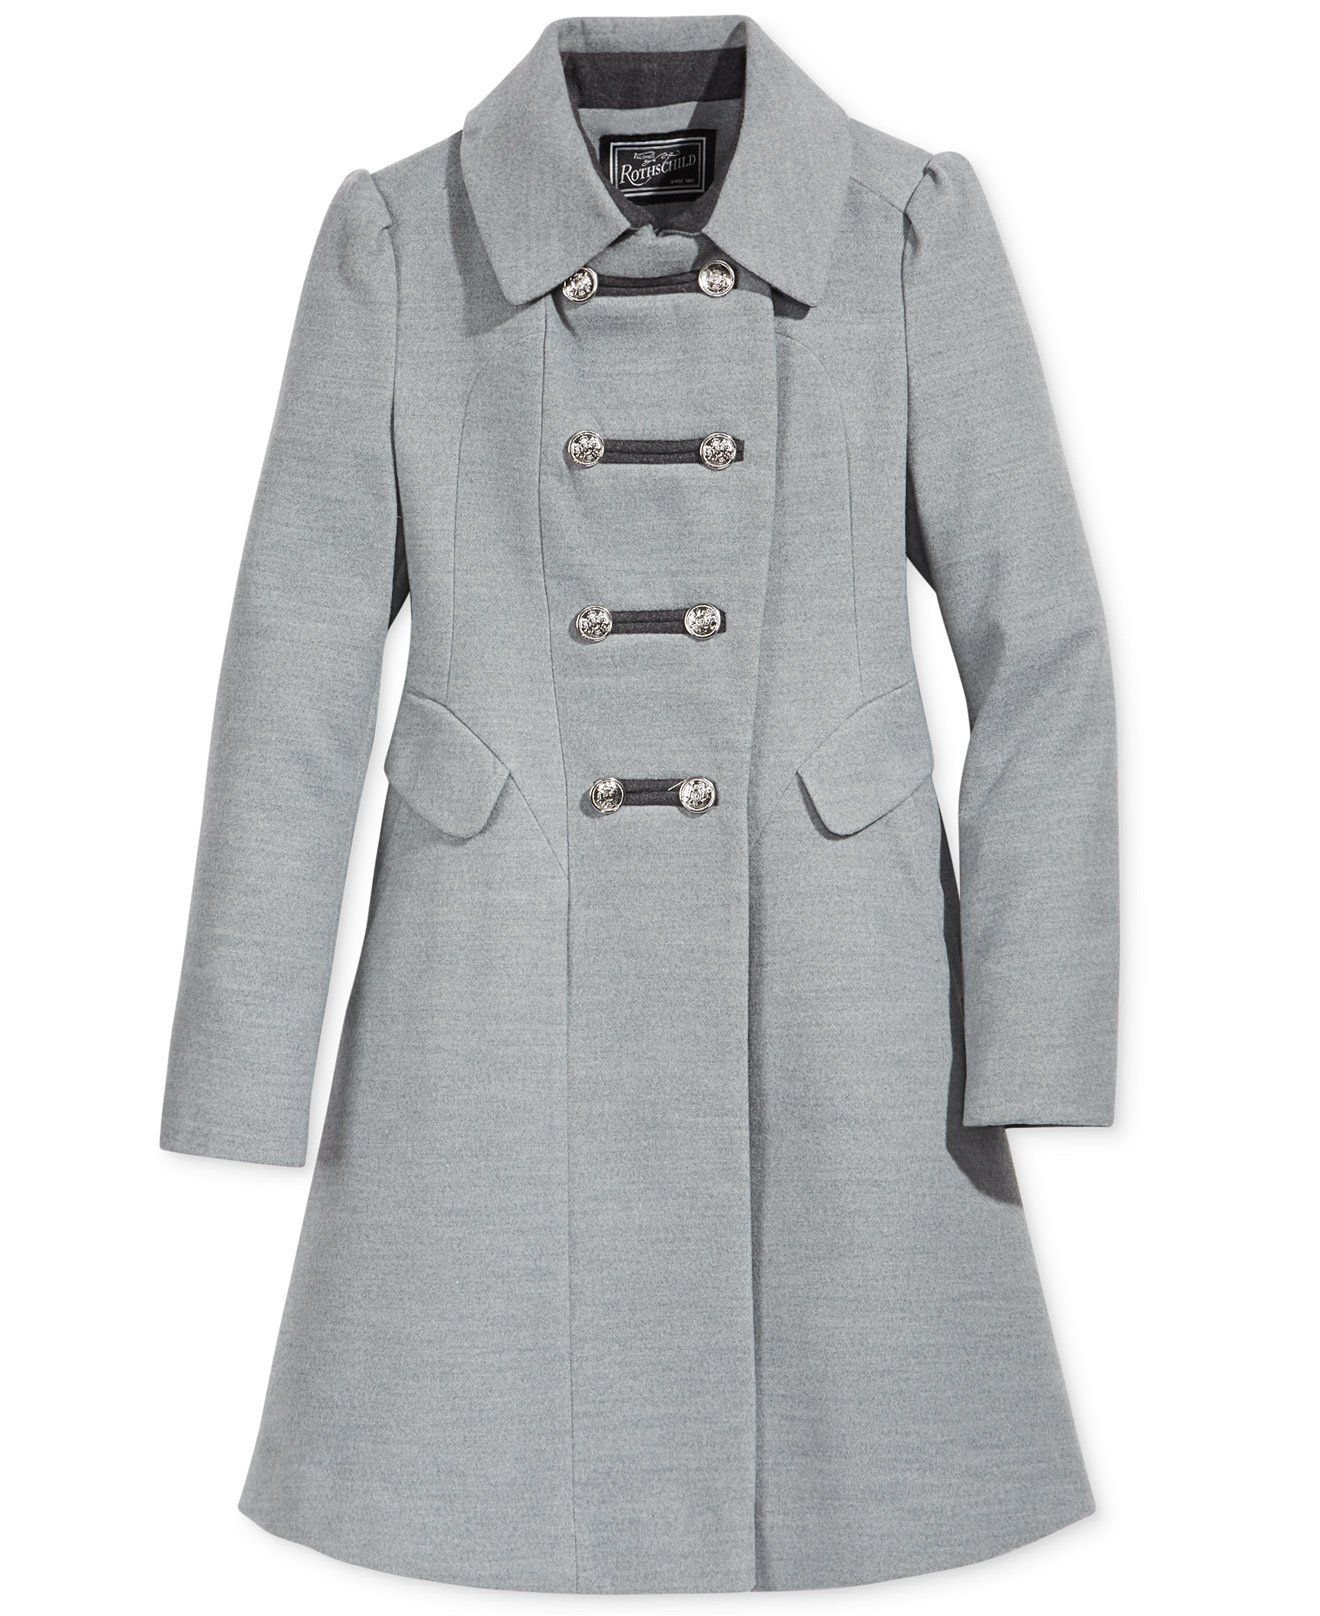 Rothschild Girls' Grey Military Faux Wool Coat - Young Timers ...